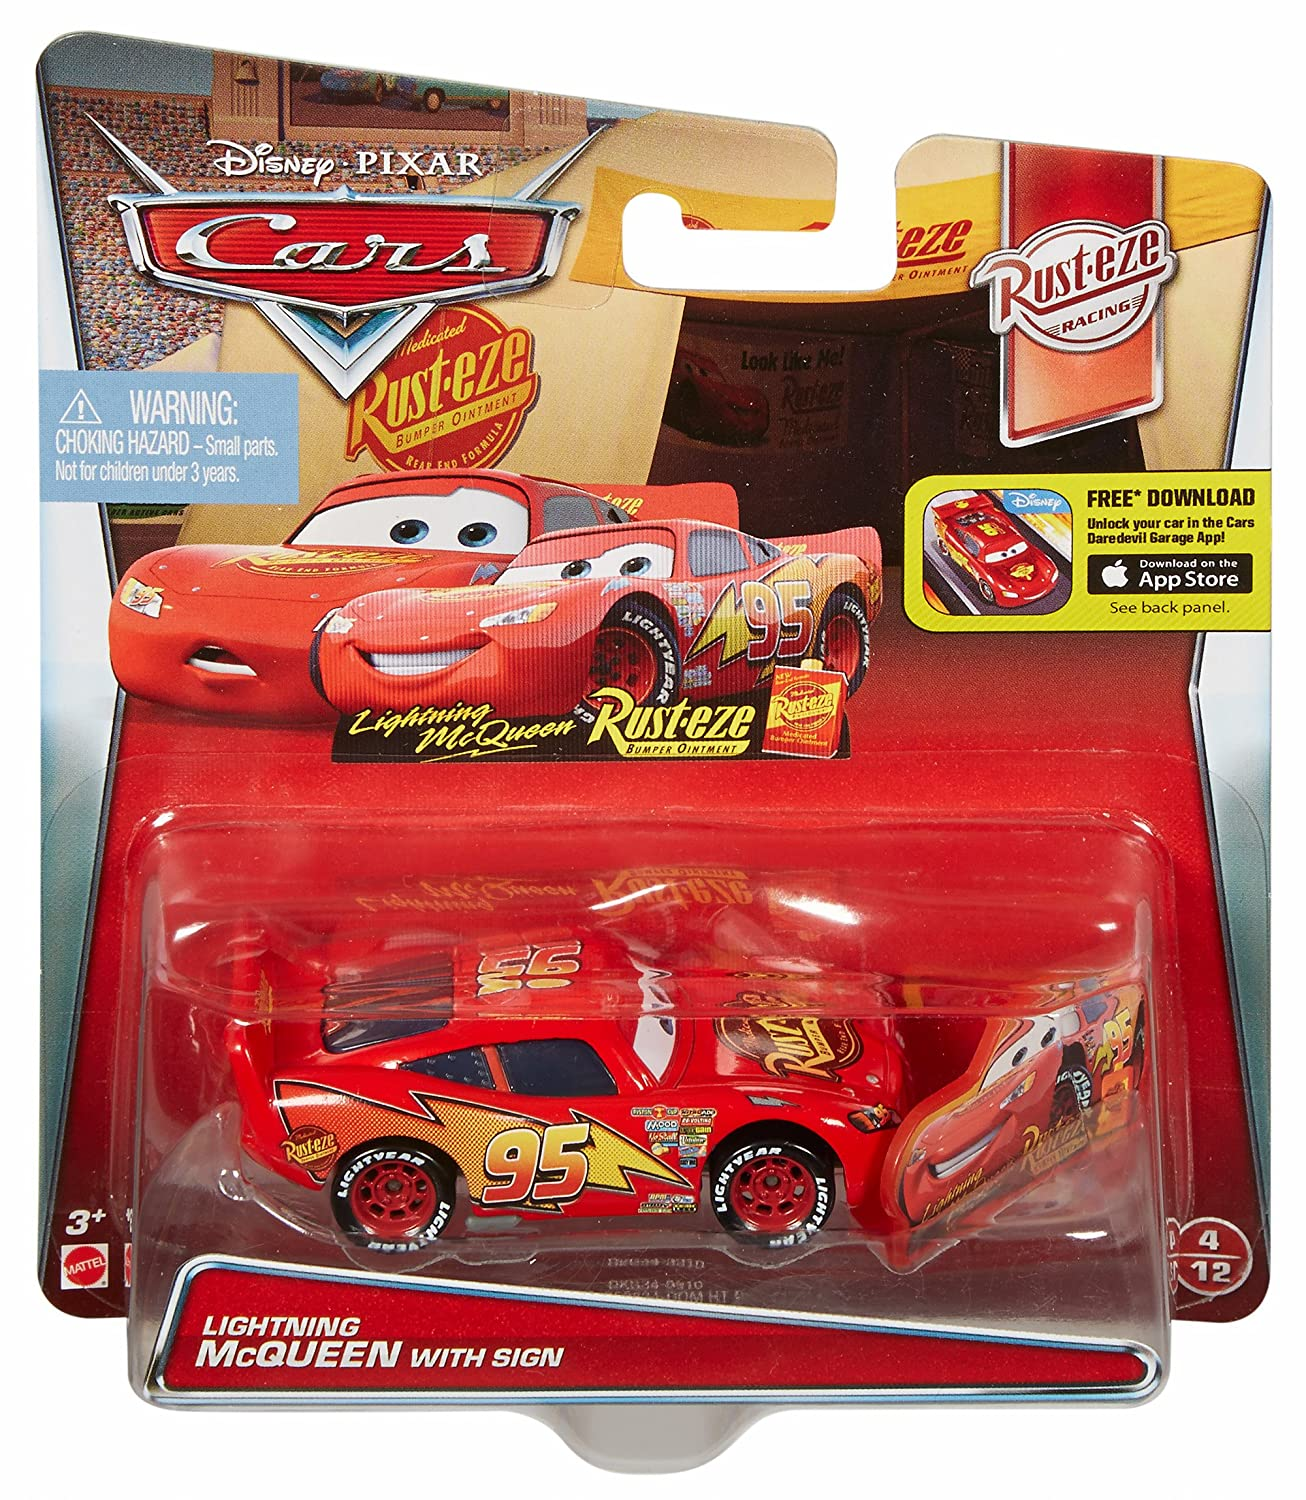 Disney/Pixar Cars Lightning McQueen with Sign Vehicle by Mattel: Amazon.es: Juguetes y juegos